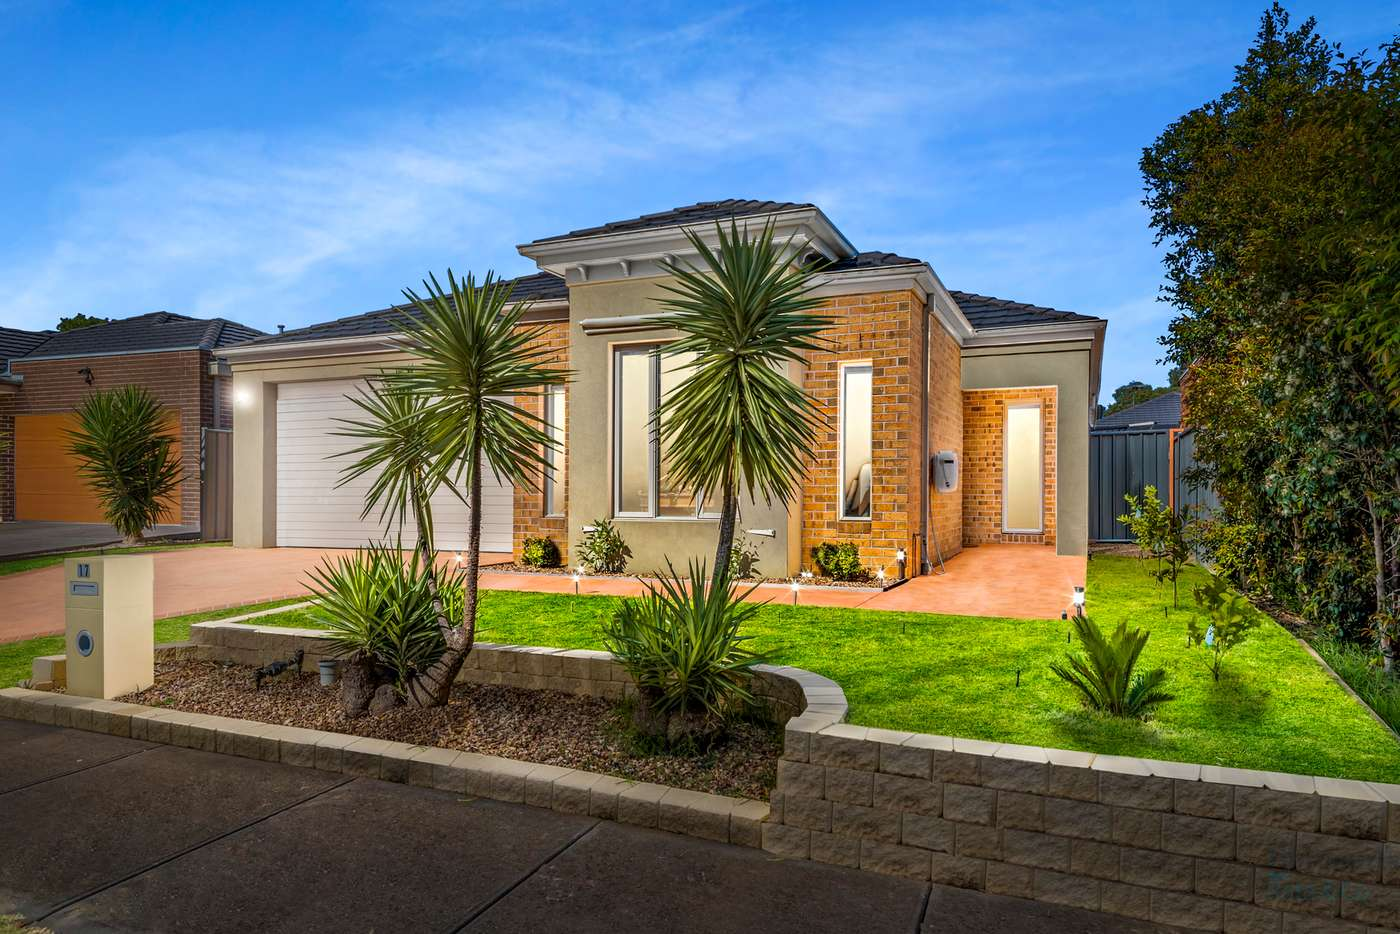 Main view of Homely house listing, 17 Rowell Drive, Mernda VIC 3754